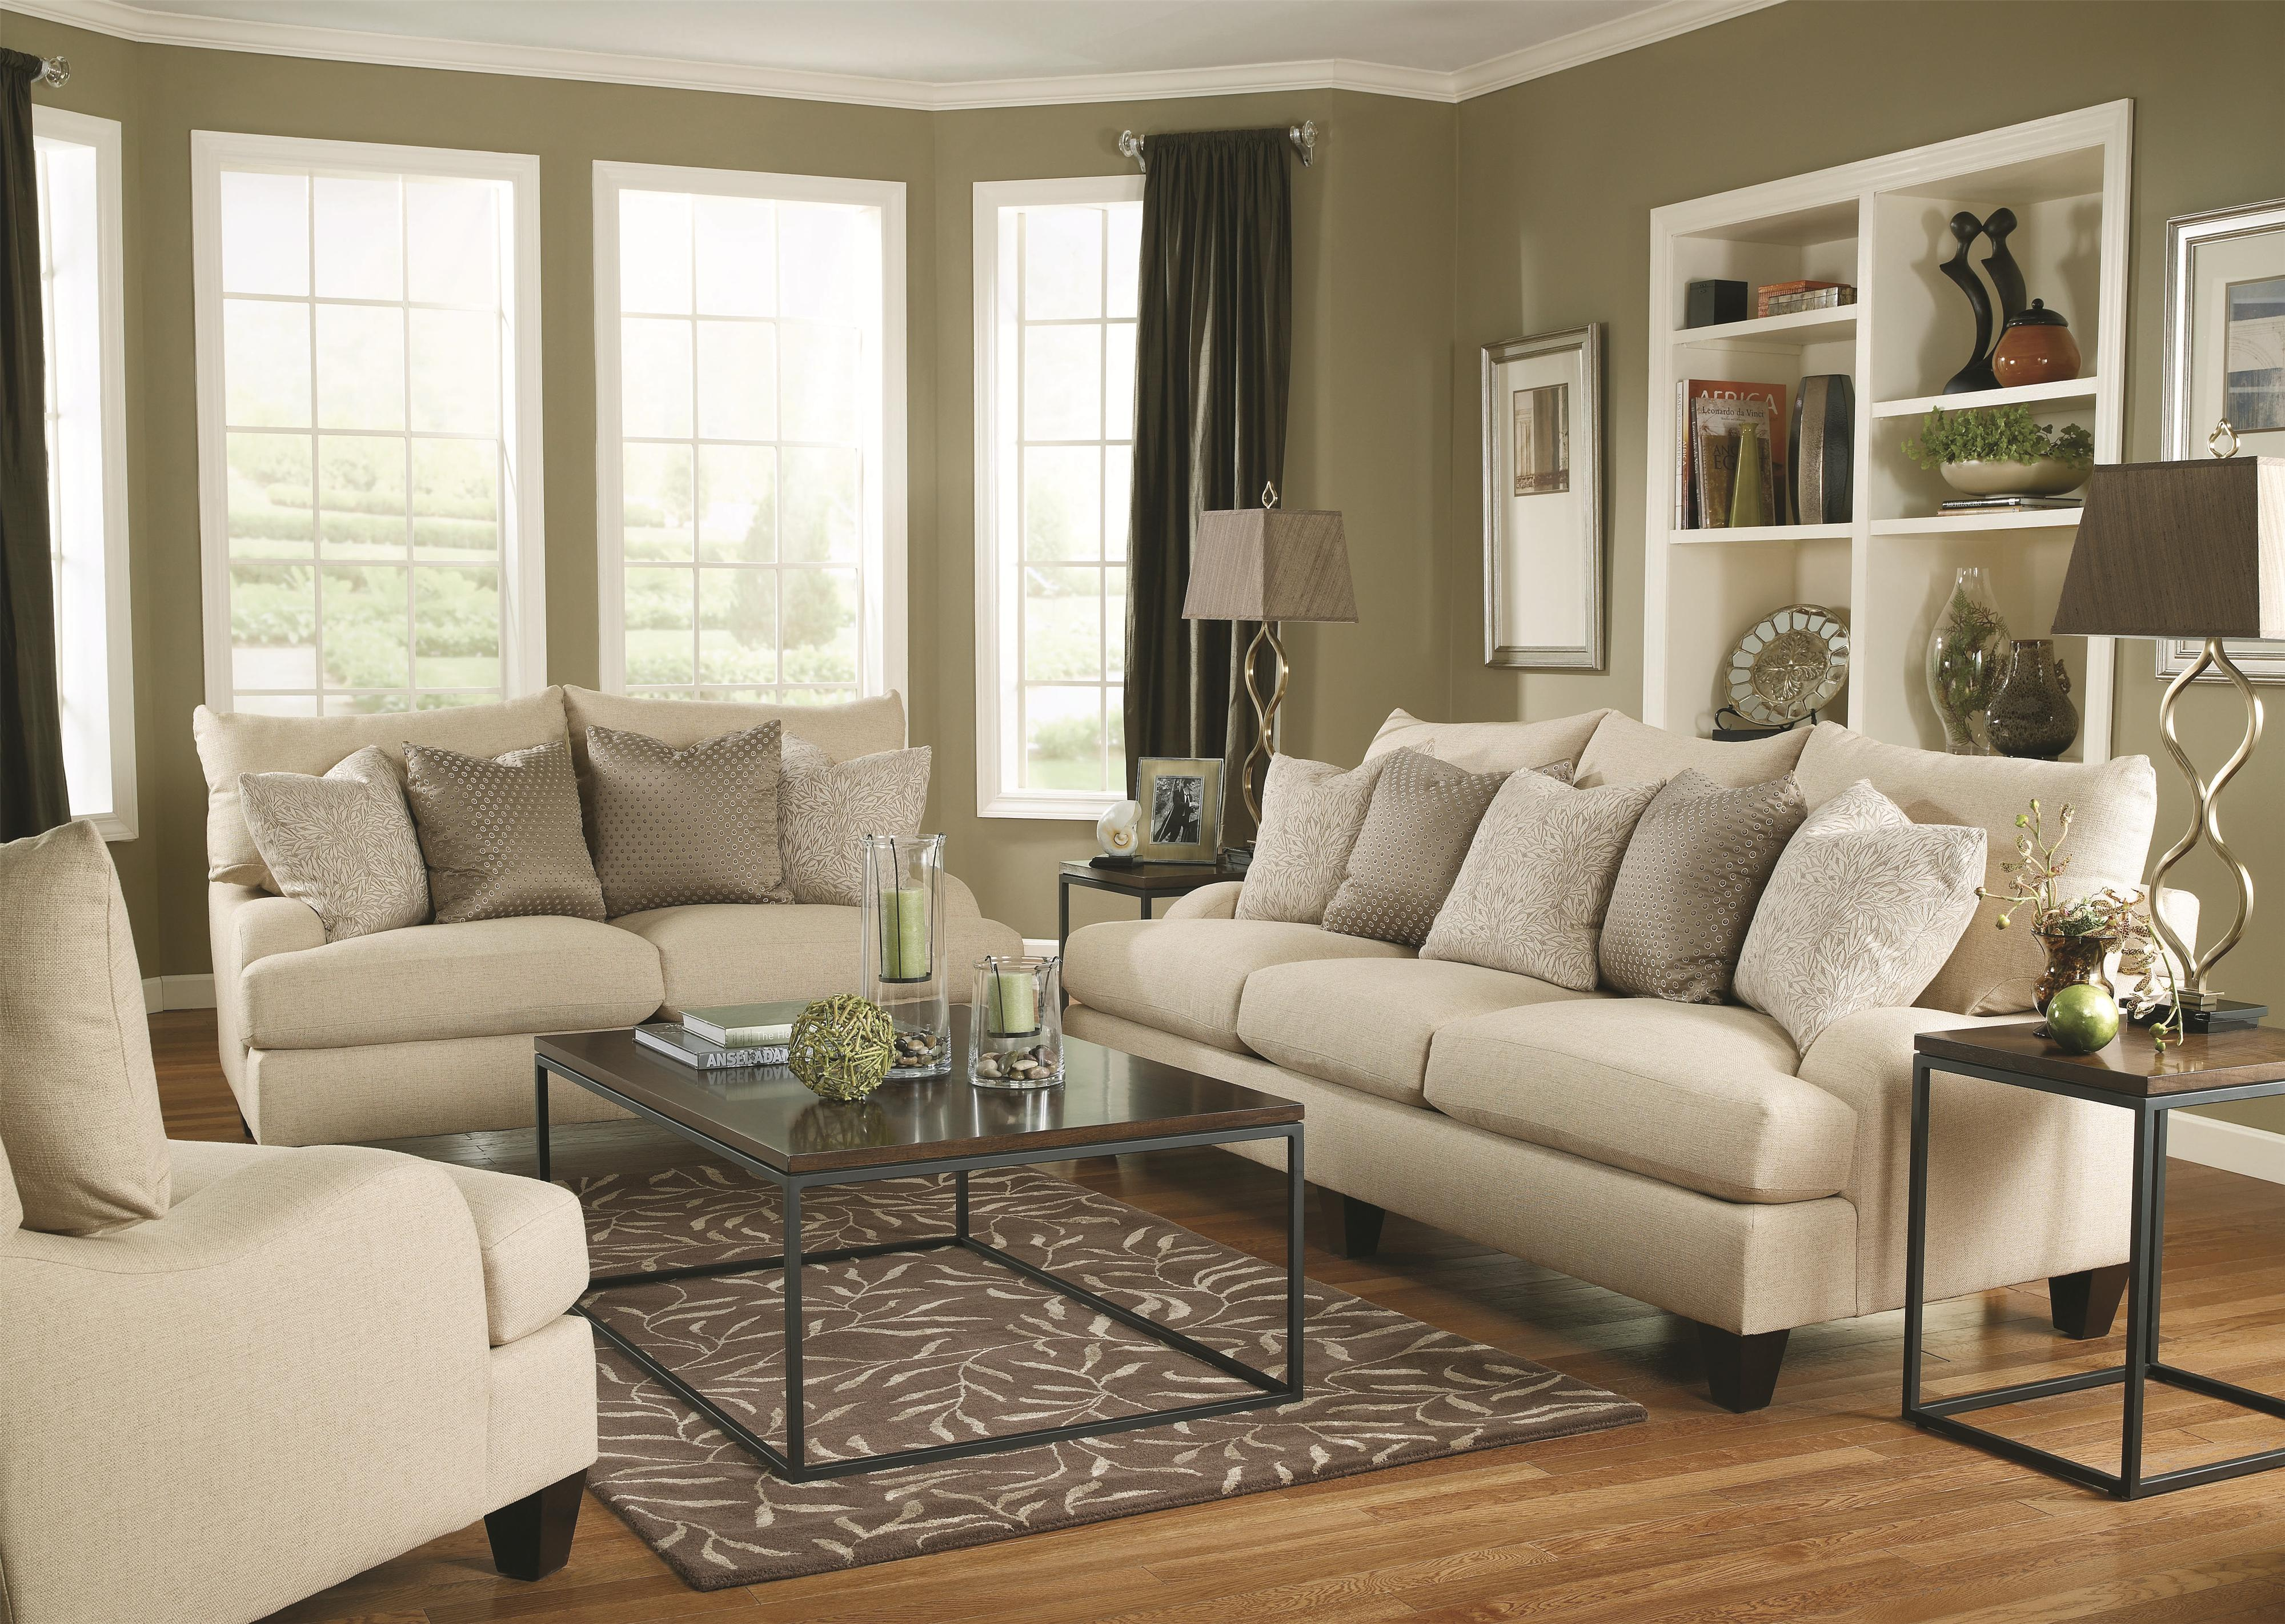 Bernhardt Brooke Upholstered Sofa with Block Legs Wayside